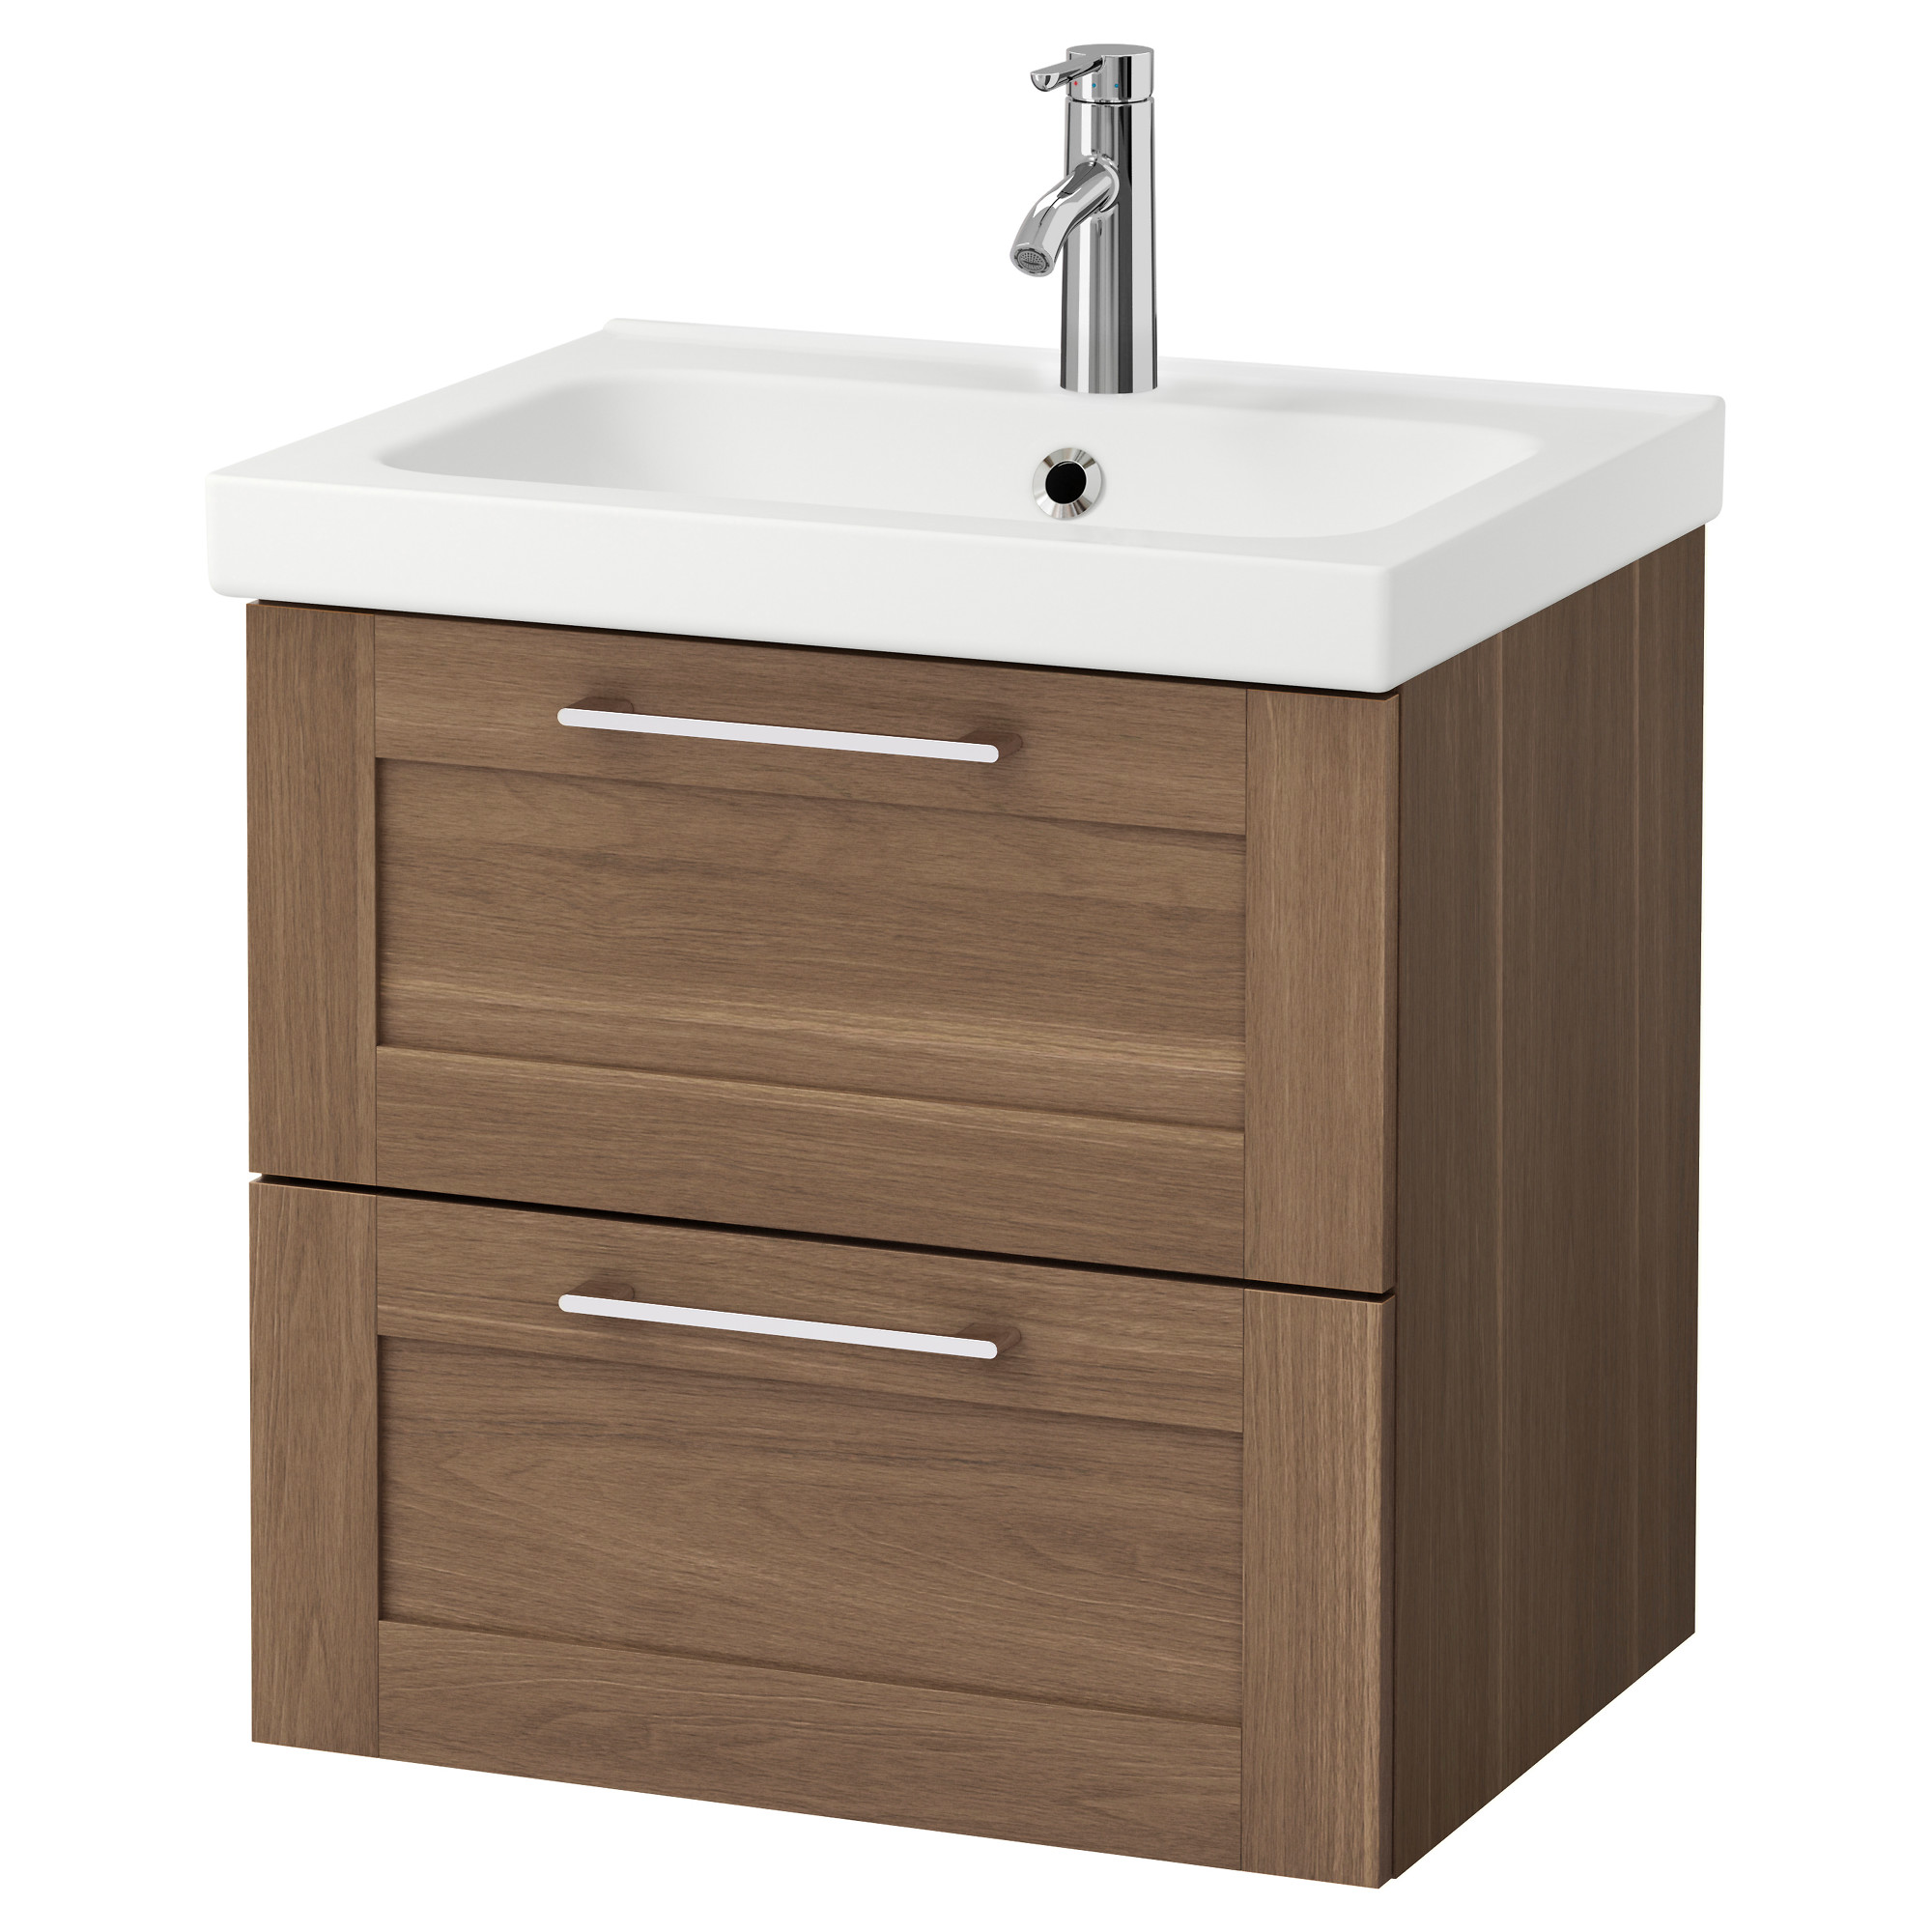 Bathroom Vanities – Sink Cabinets Countertops